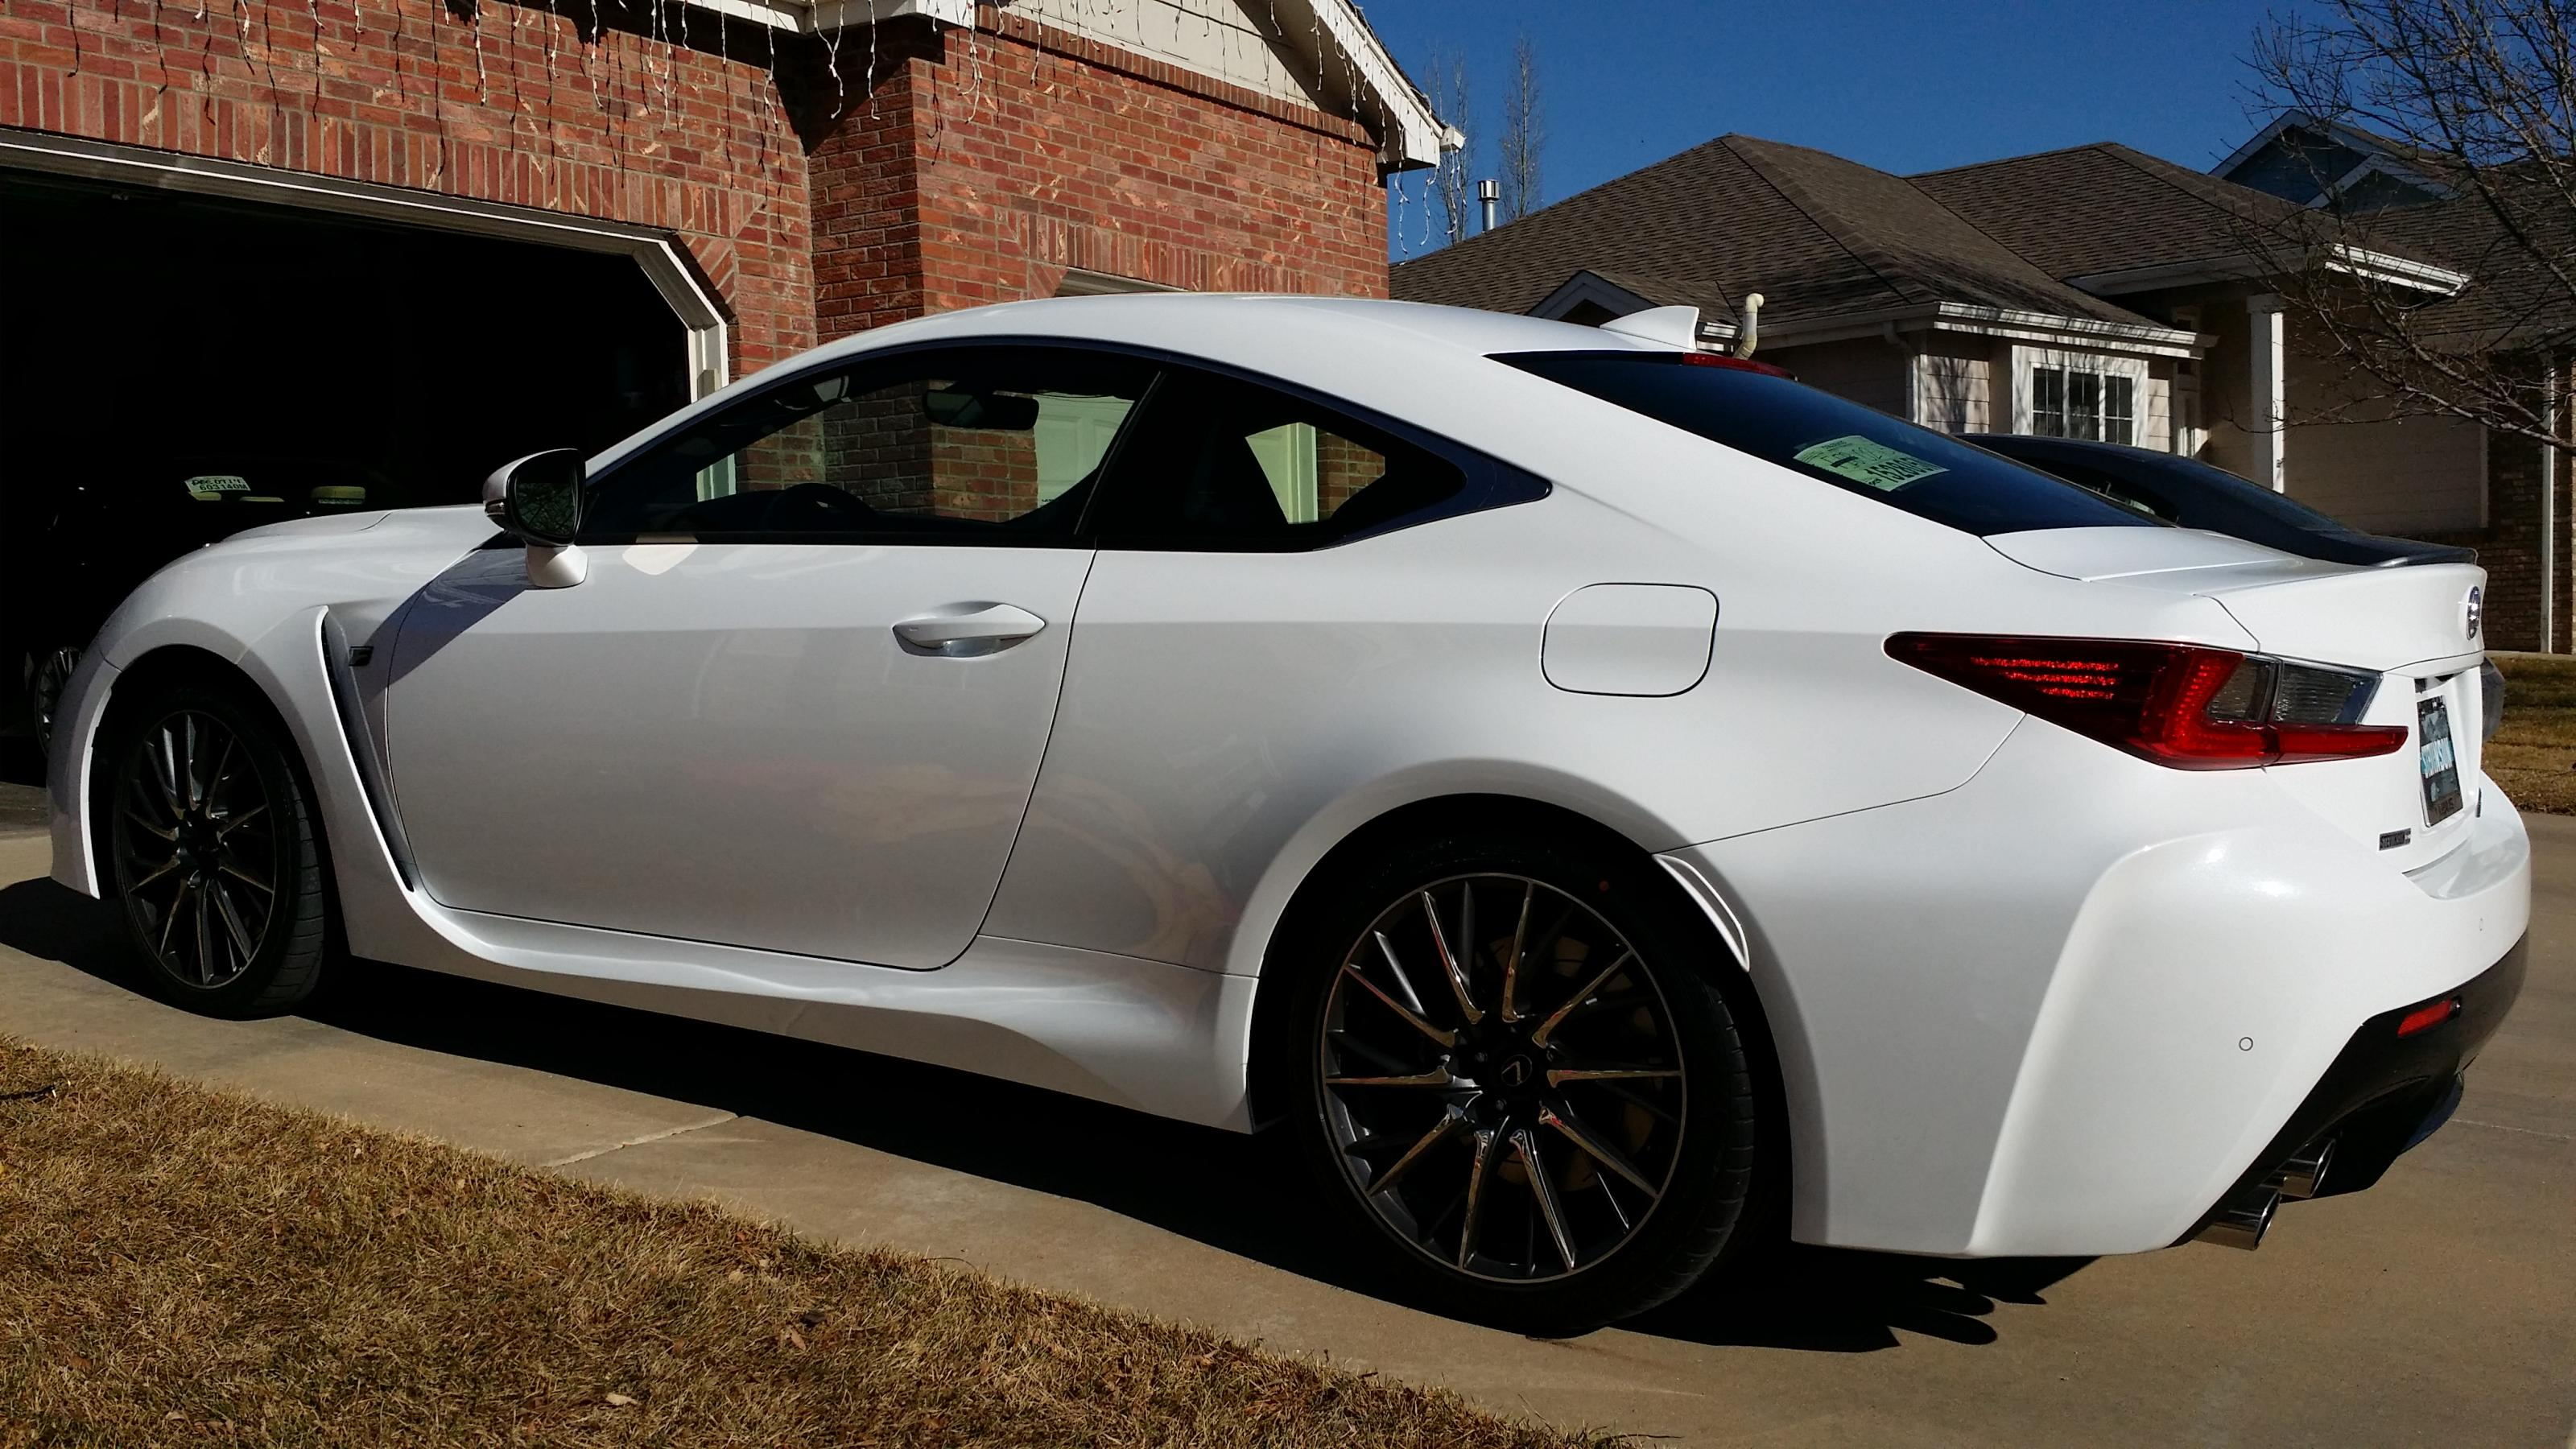 Wel e to Club Lexus RC F owner roll call & member introduction